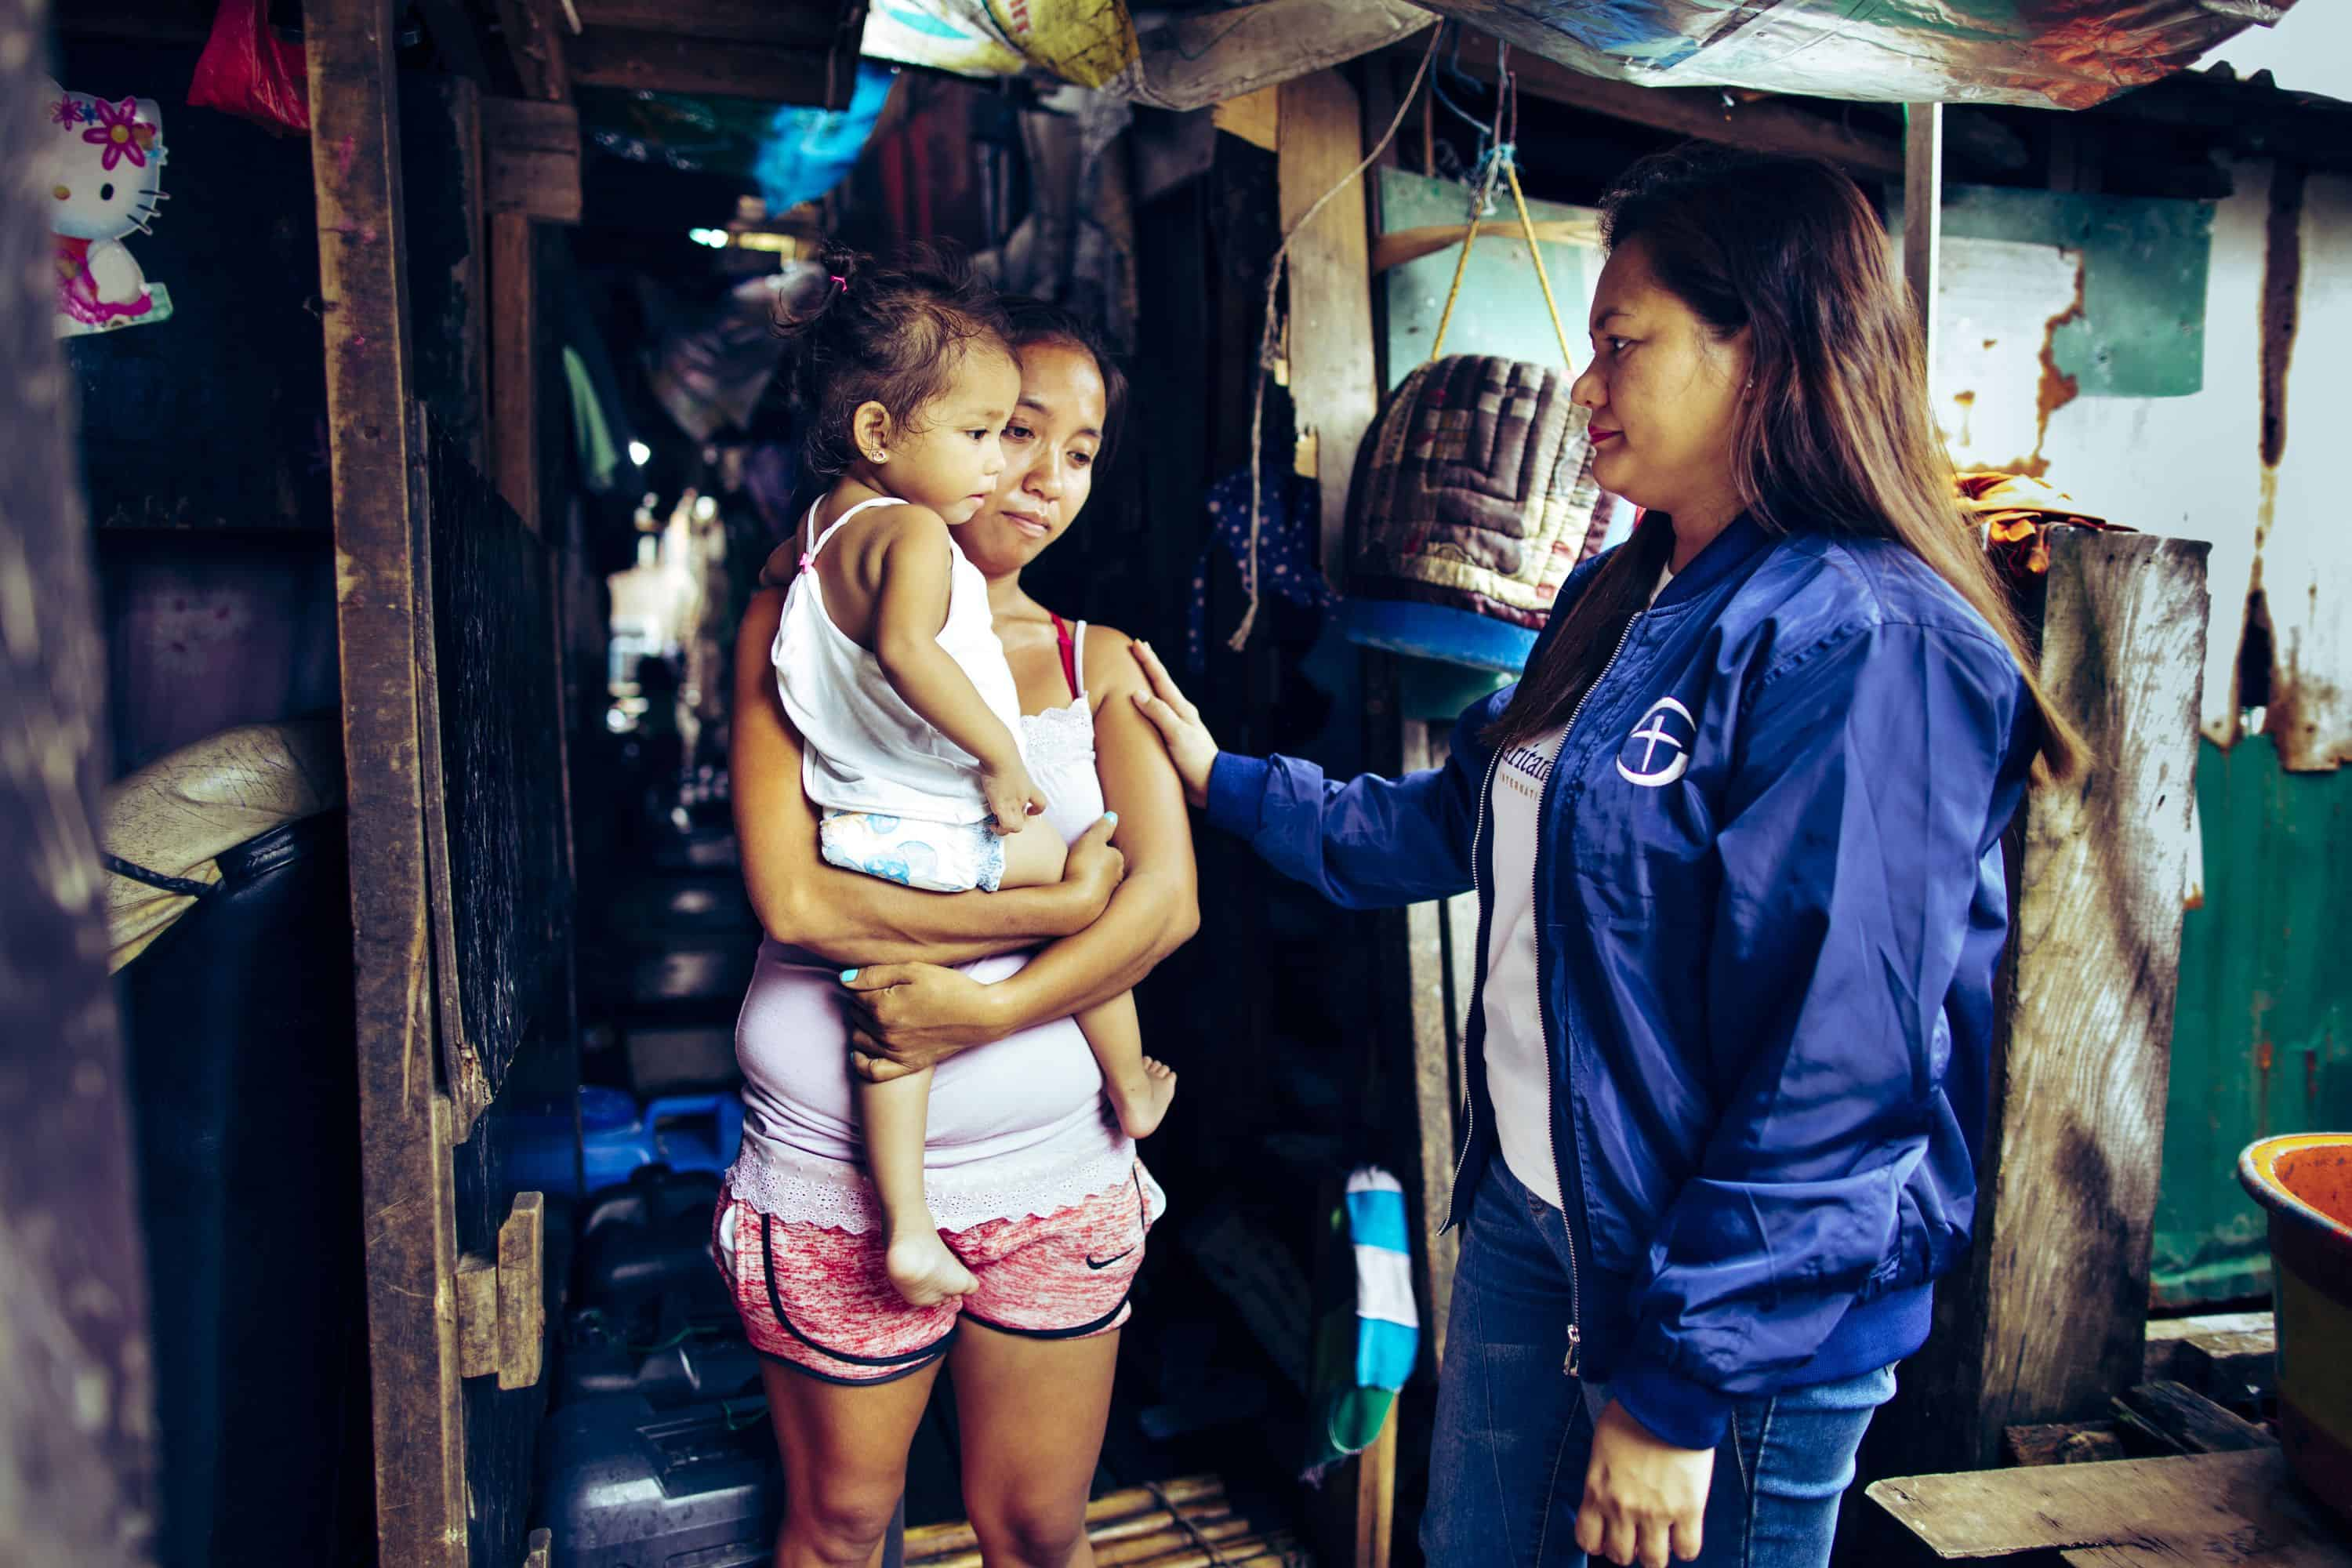 Samaritan's Purse staff show compassion in Jesus' Name to Tondo families struggling to make ends meet.